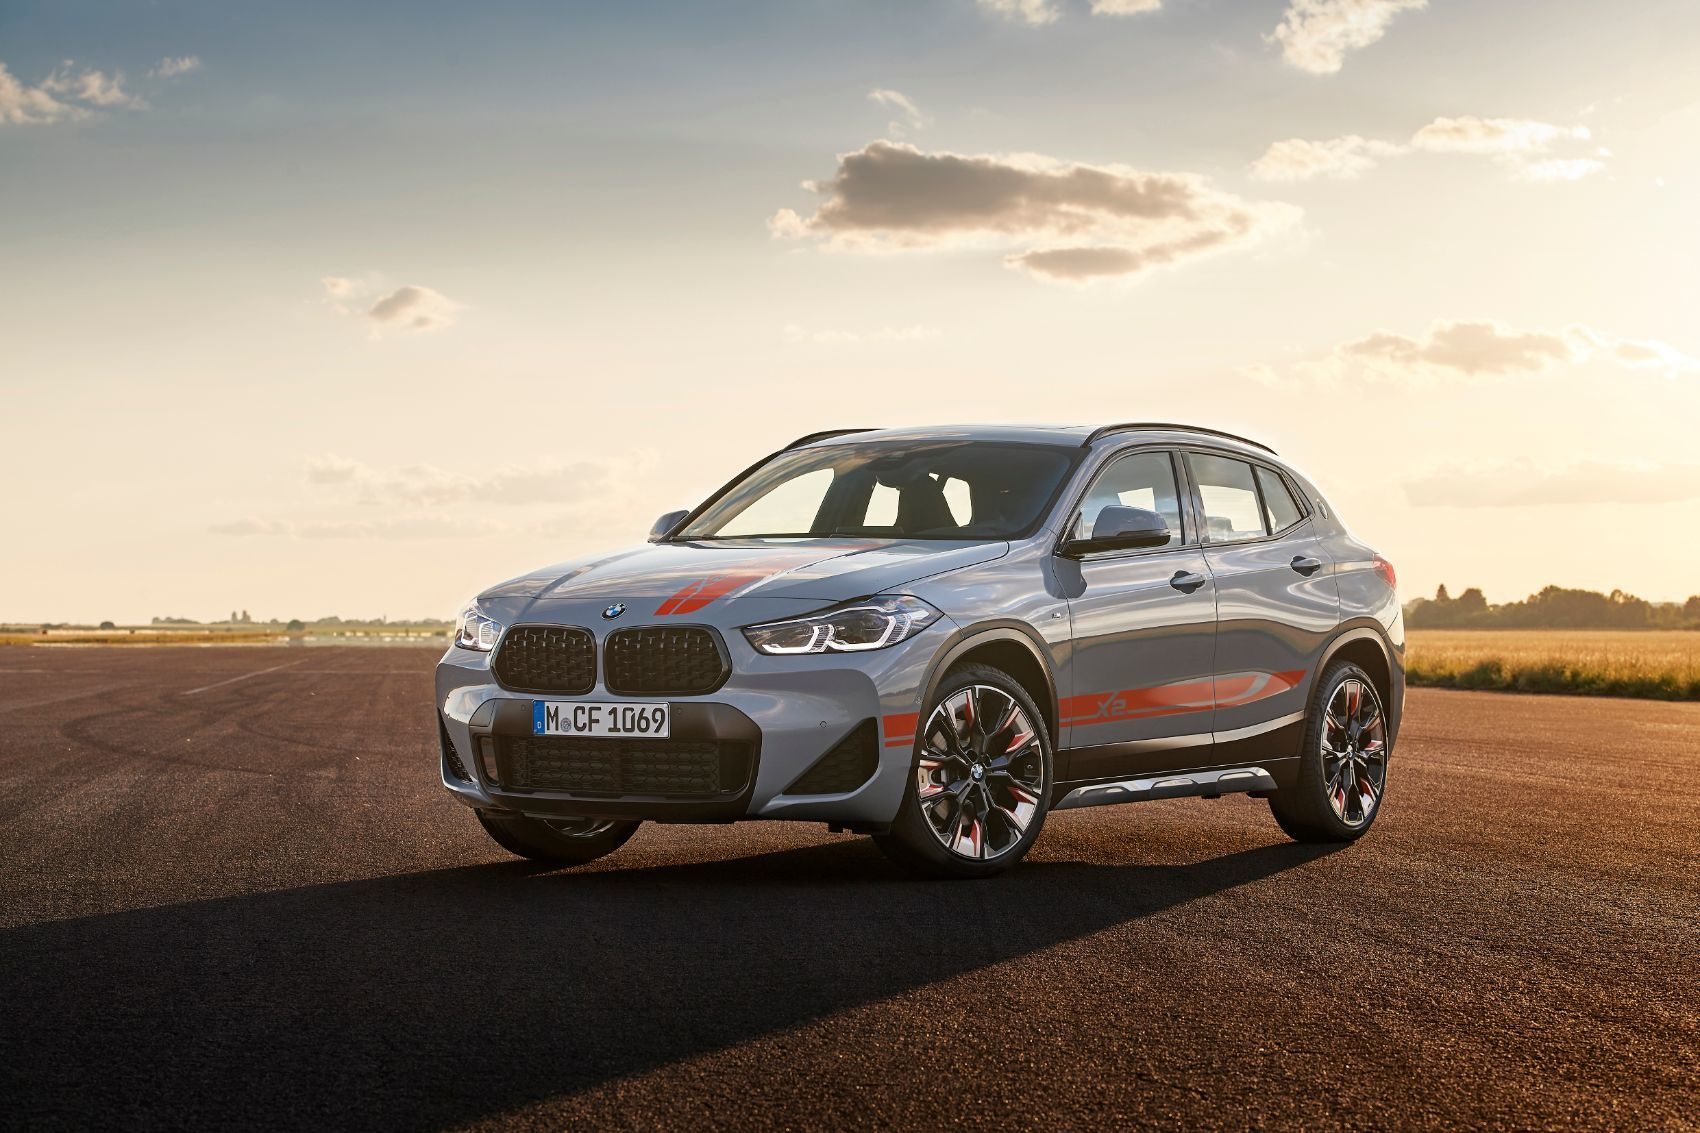 2021 BMW X2 Edition M Mesh: Still a Winner, but Missing One Little Thing